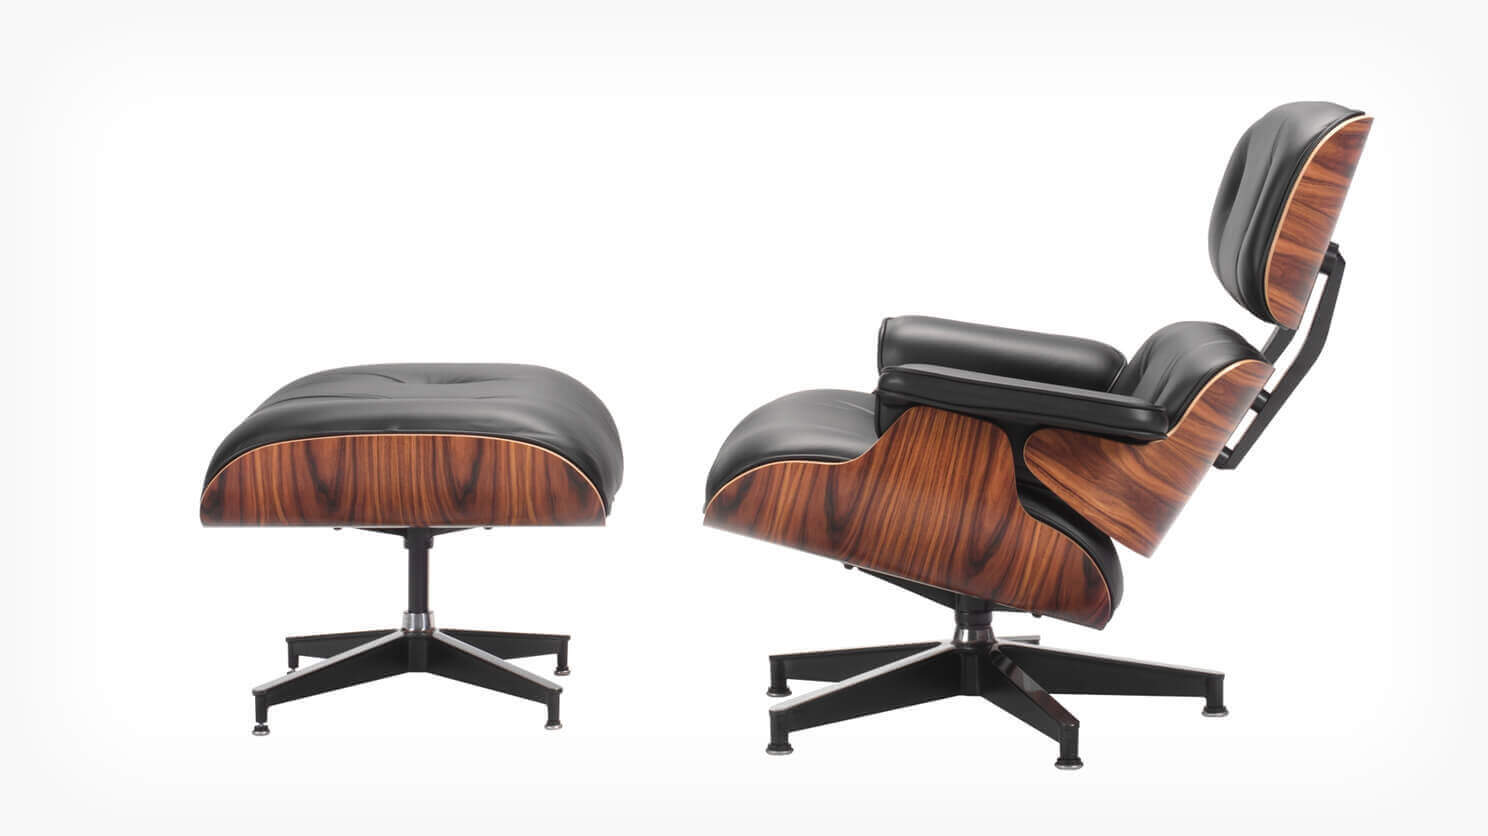 Eanes Chair Eames Lounge Chair And Ottoman